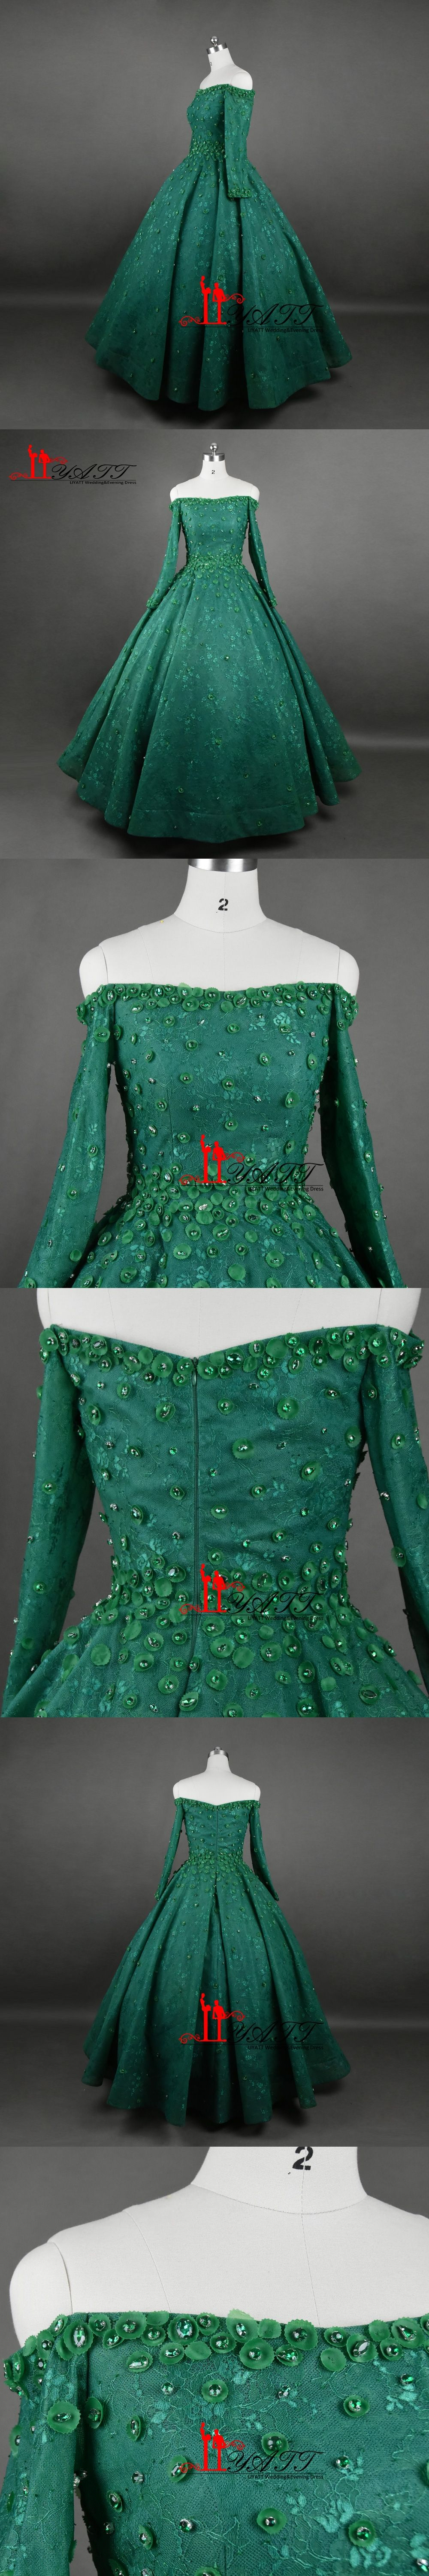 Luxury 2017 New Arrival Evening Dresses Dark Green Long Sleeves Puffy Ball  Gown Arabic Vintage Crystal 1938b26bc793